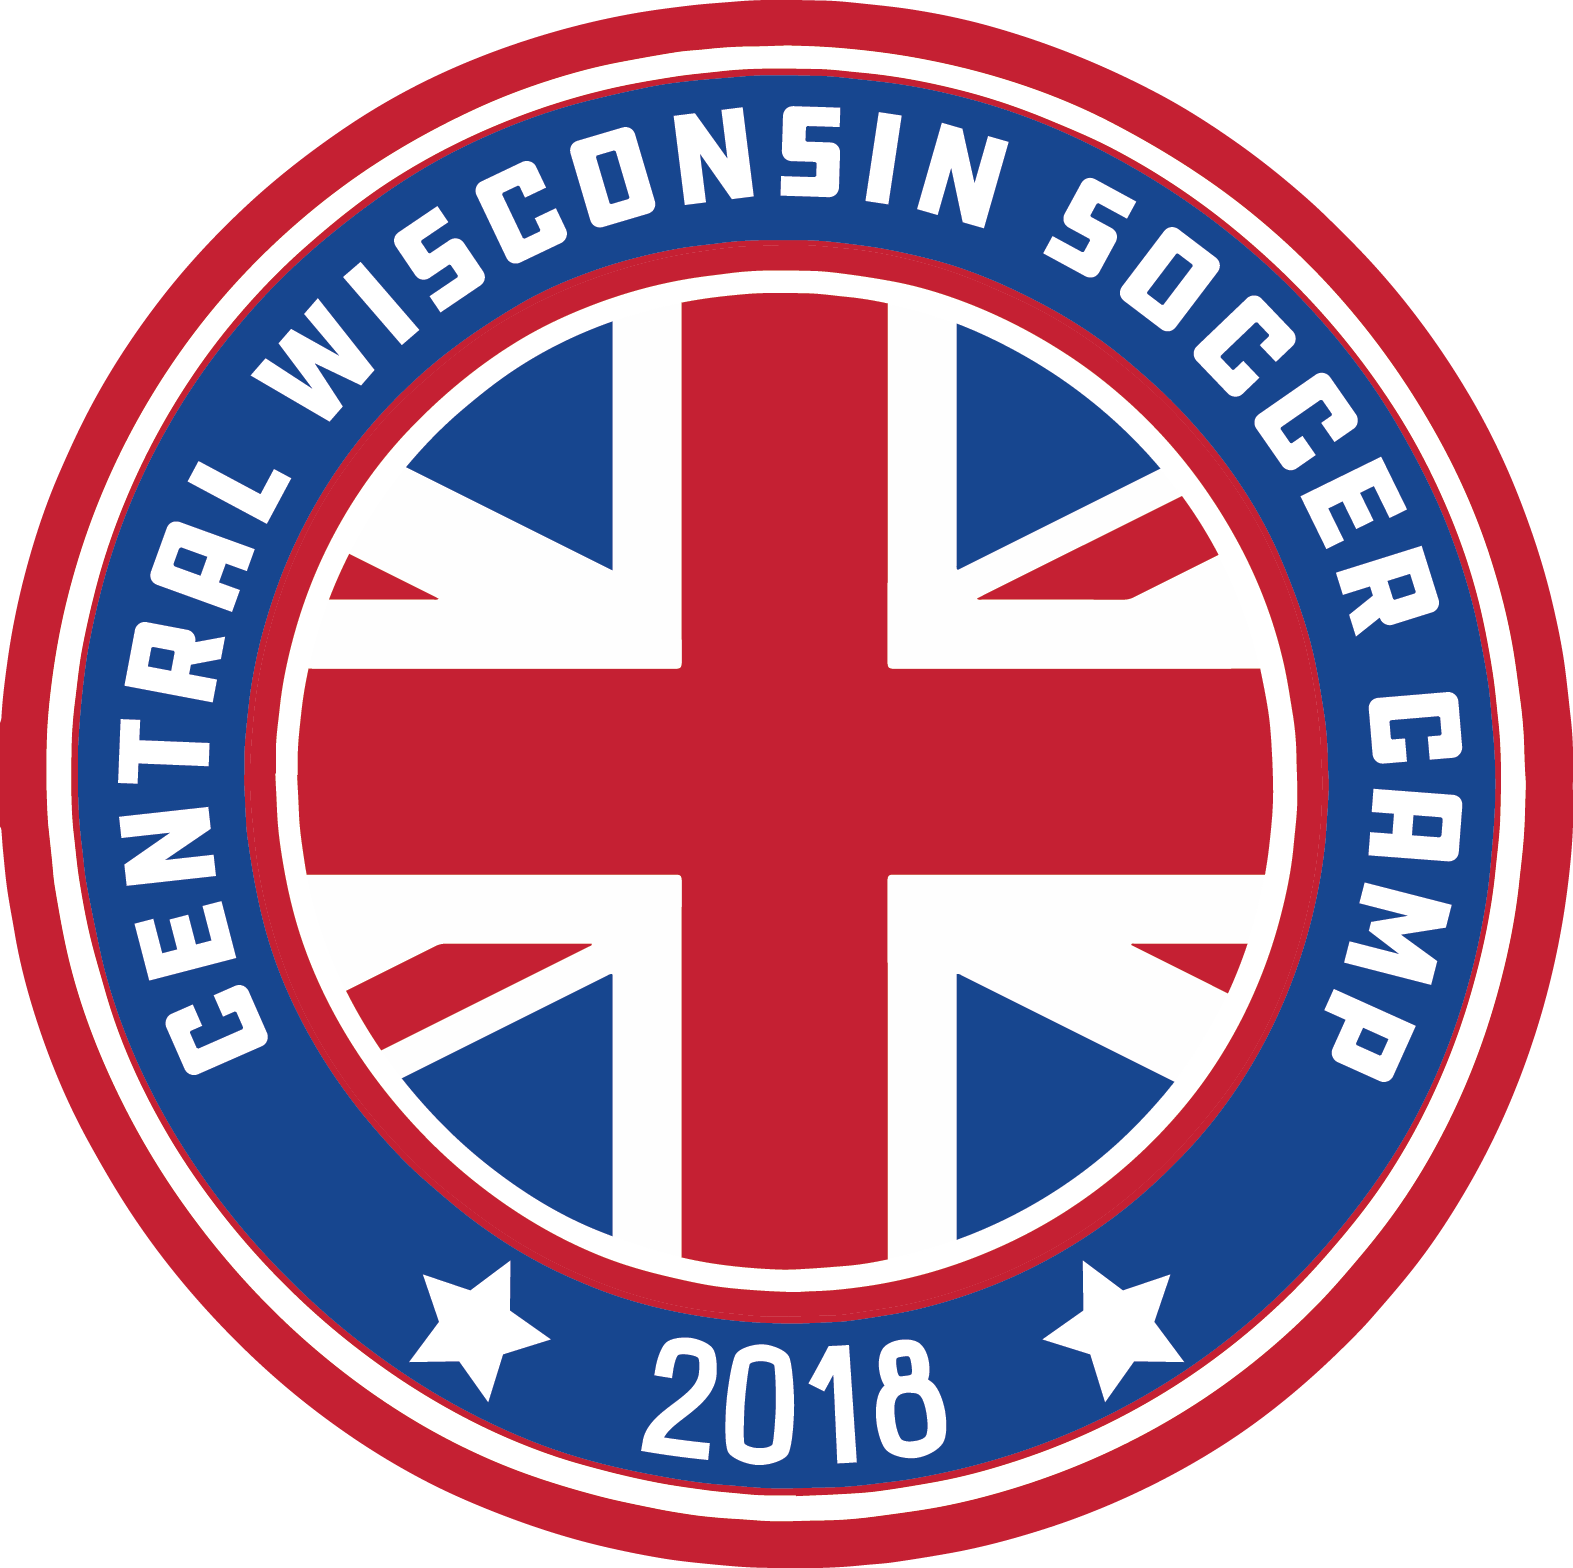 Central Wisconsin Soccer Camp